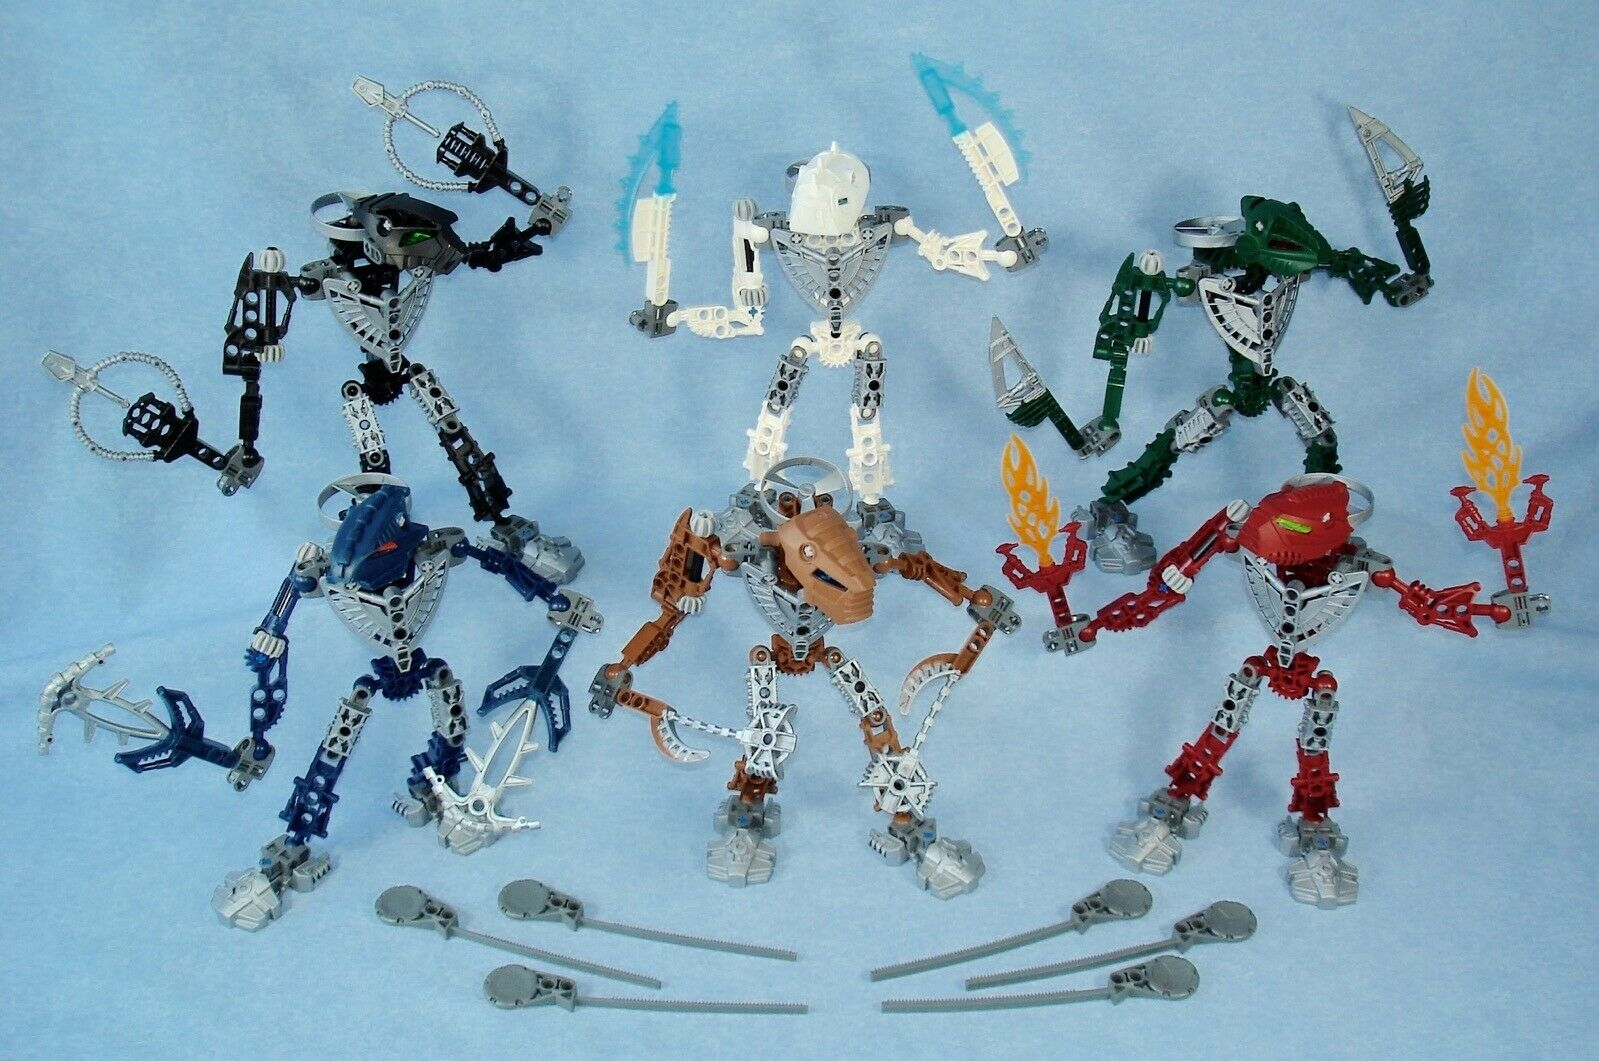 2005 Lego Bionicle HORDIKA (8736-  8741) Metru Nui Toa - completare with Spinners  outlet